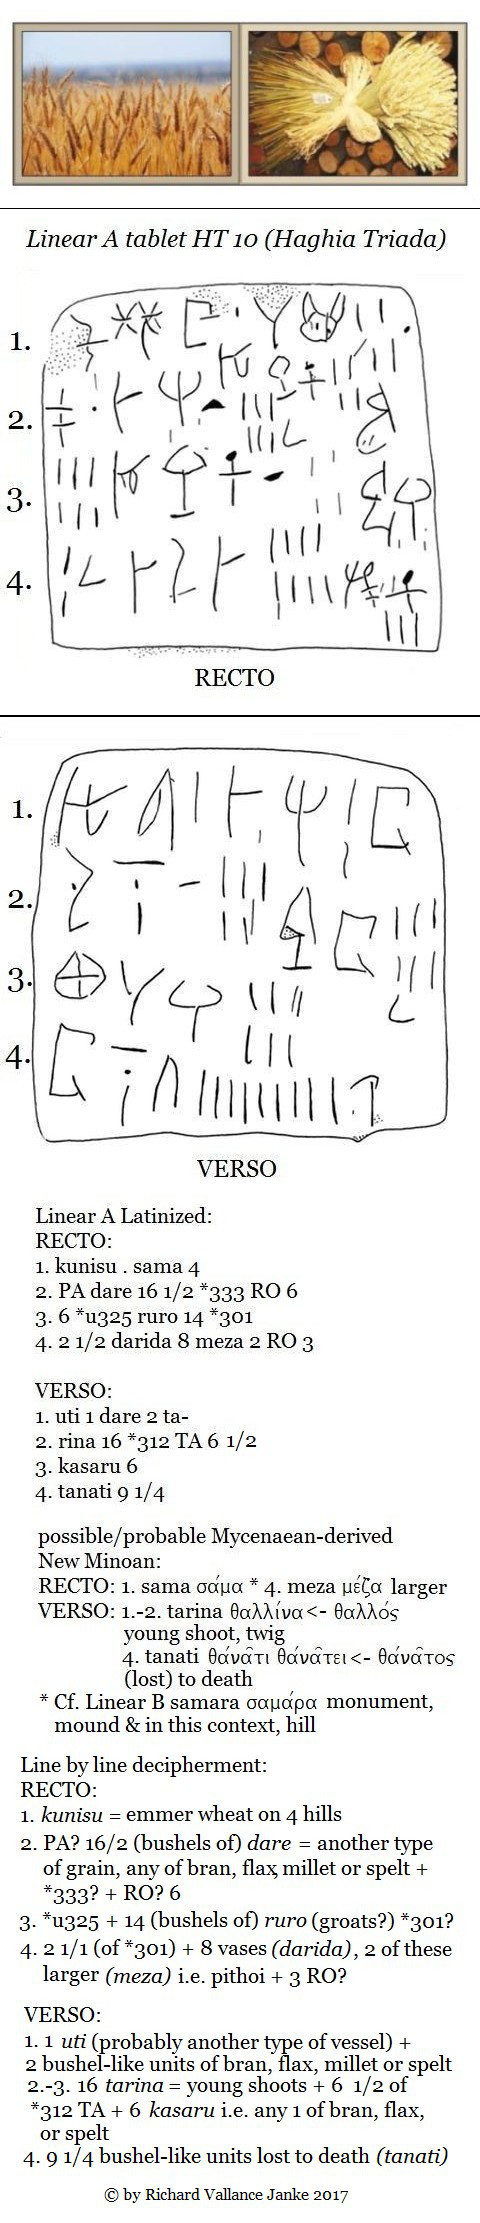 Linear A tablet HT 10 Haghia Triada dealing with several grain crops |  Grammar and vocabulary, Ancient languages, Mycenae